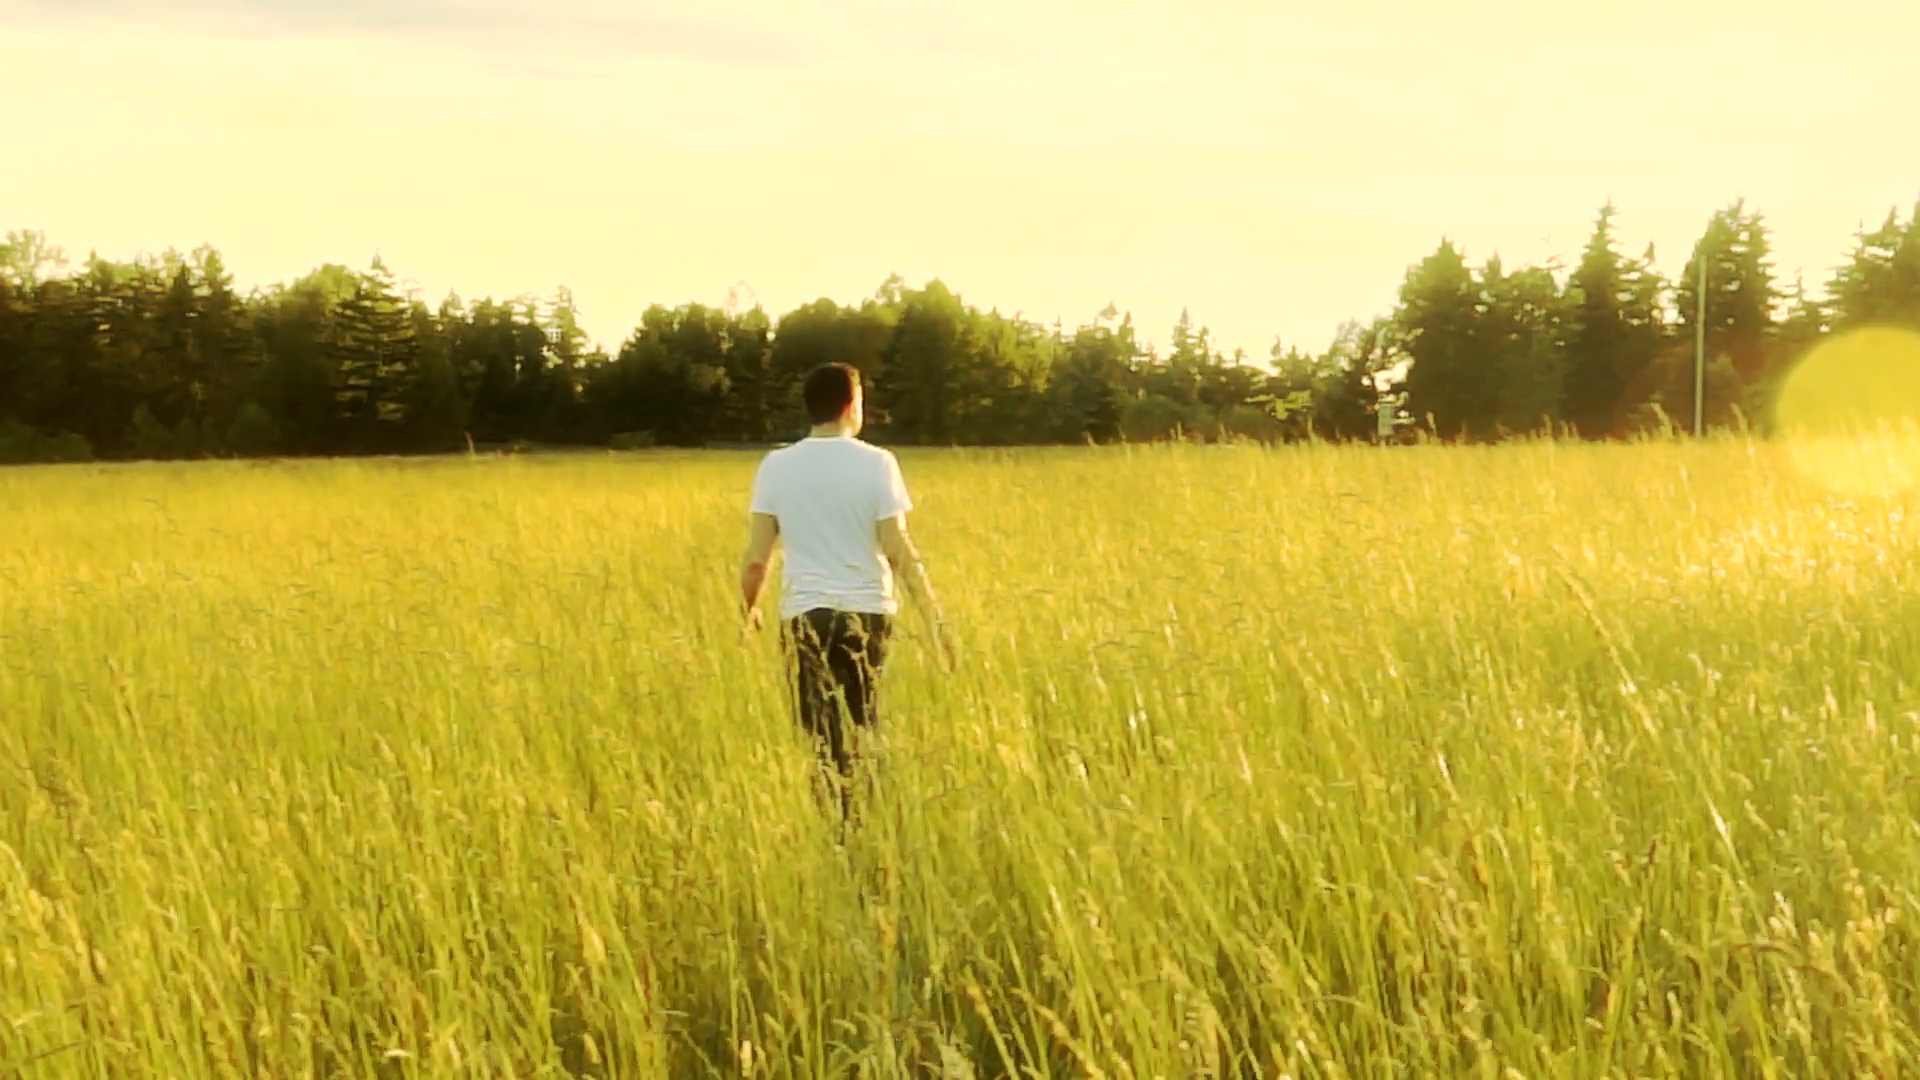 Free photo: Man in grass - Abstract, Man, Model - Free Download - Jooinn